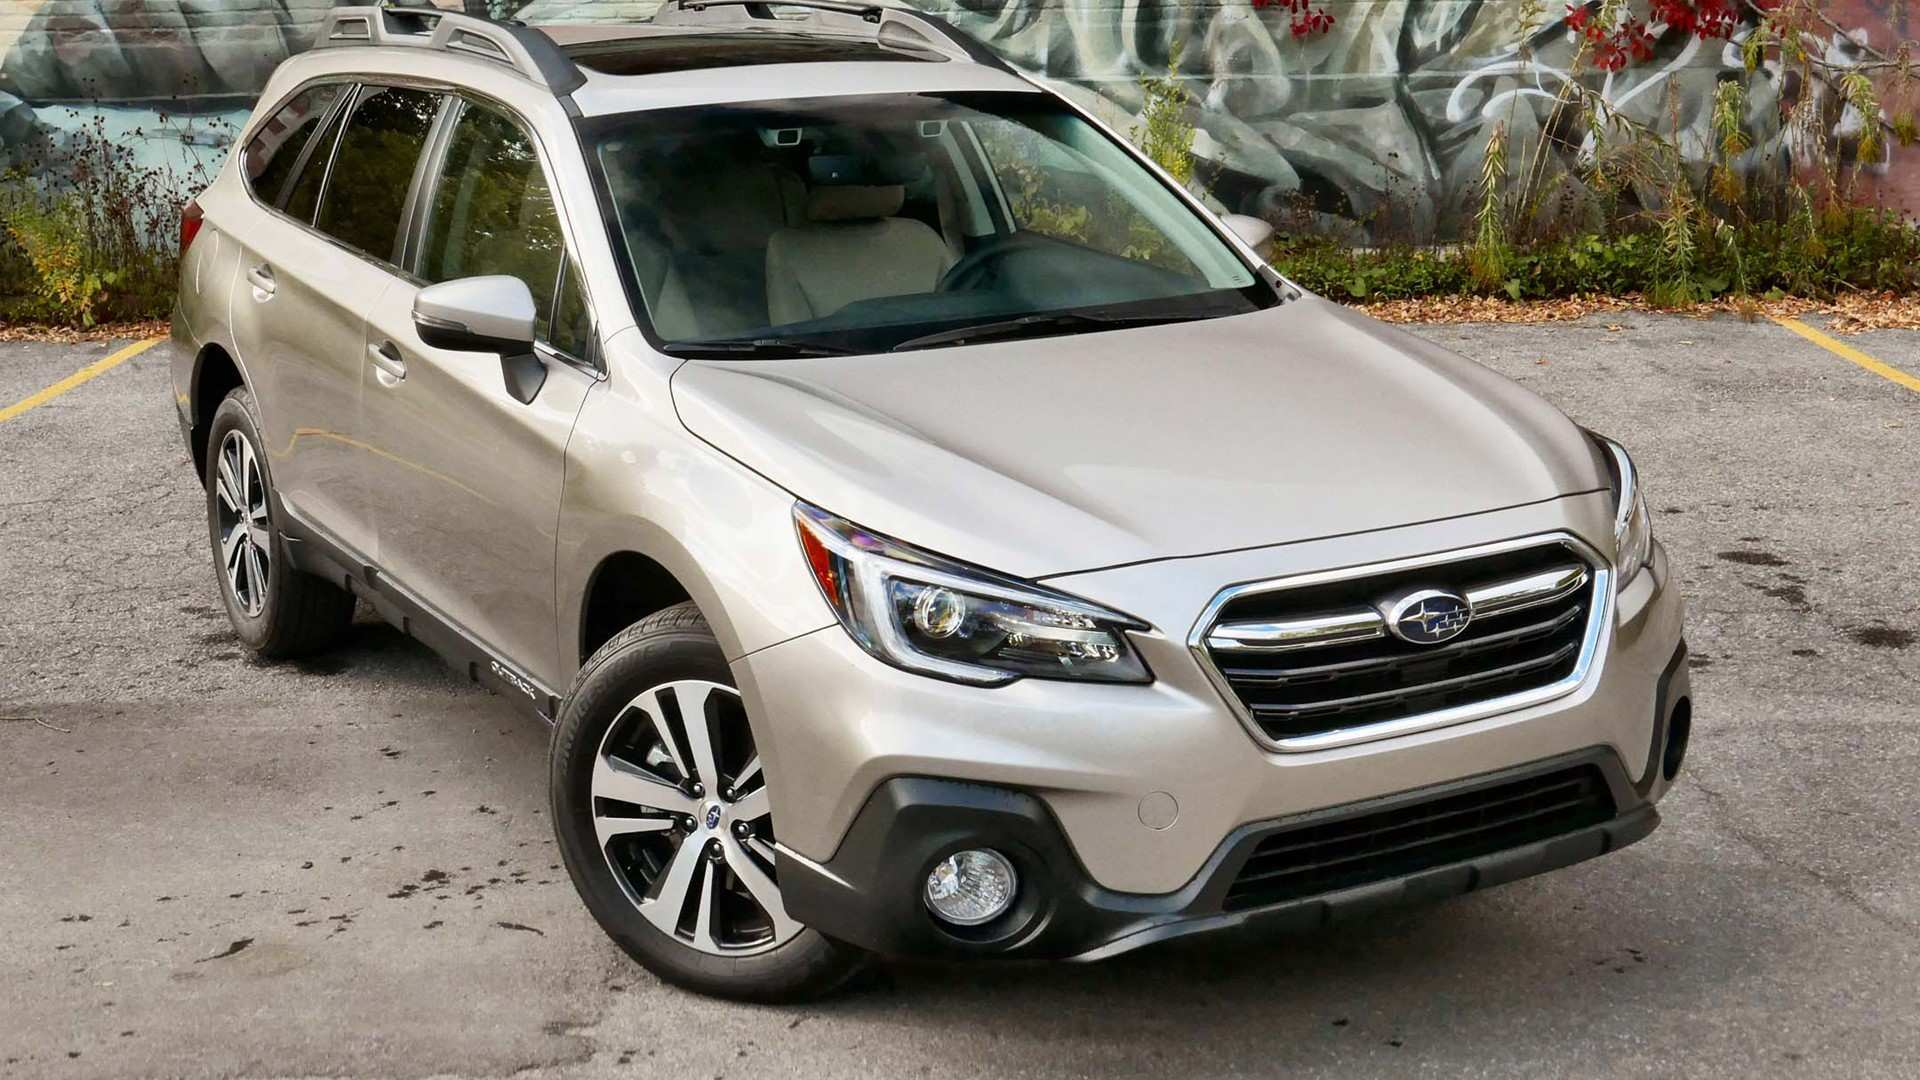 97 The Best 2019 Subaru Outback Review And Release Date